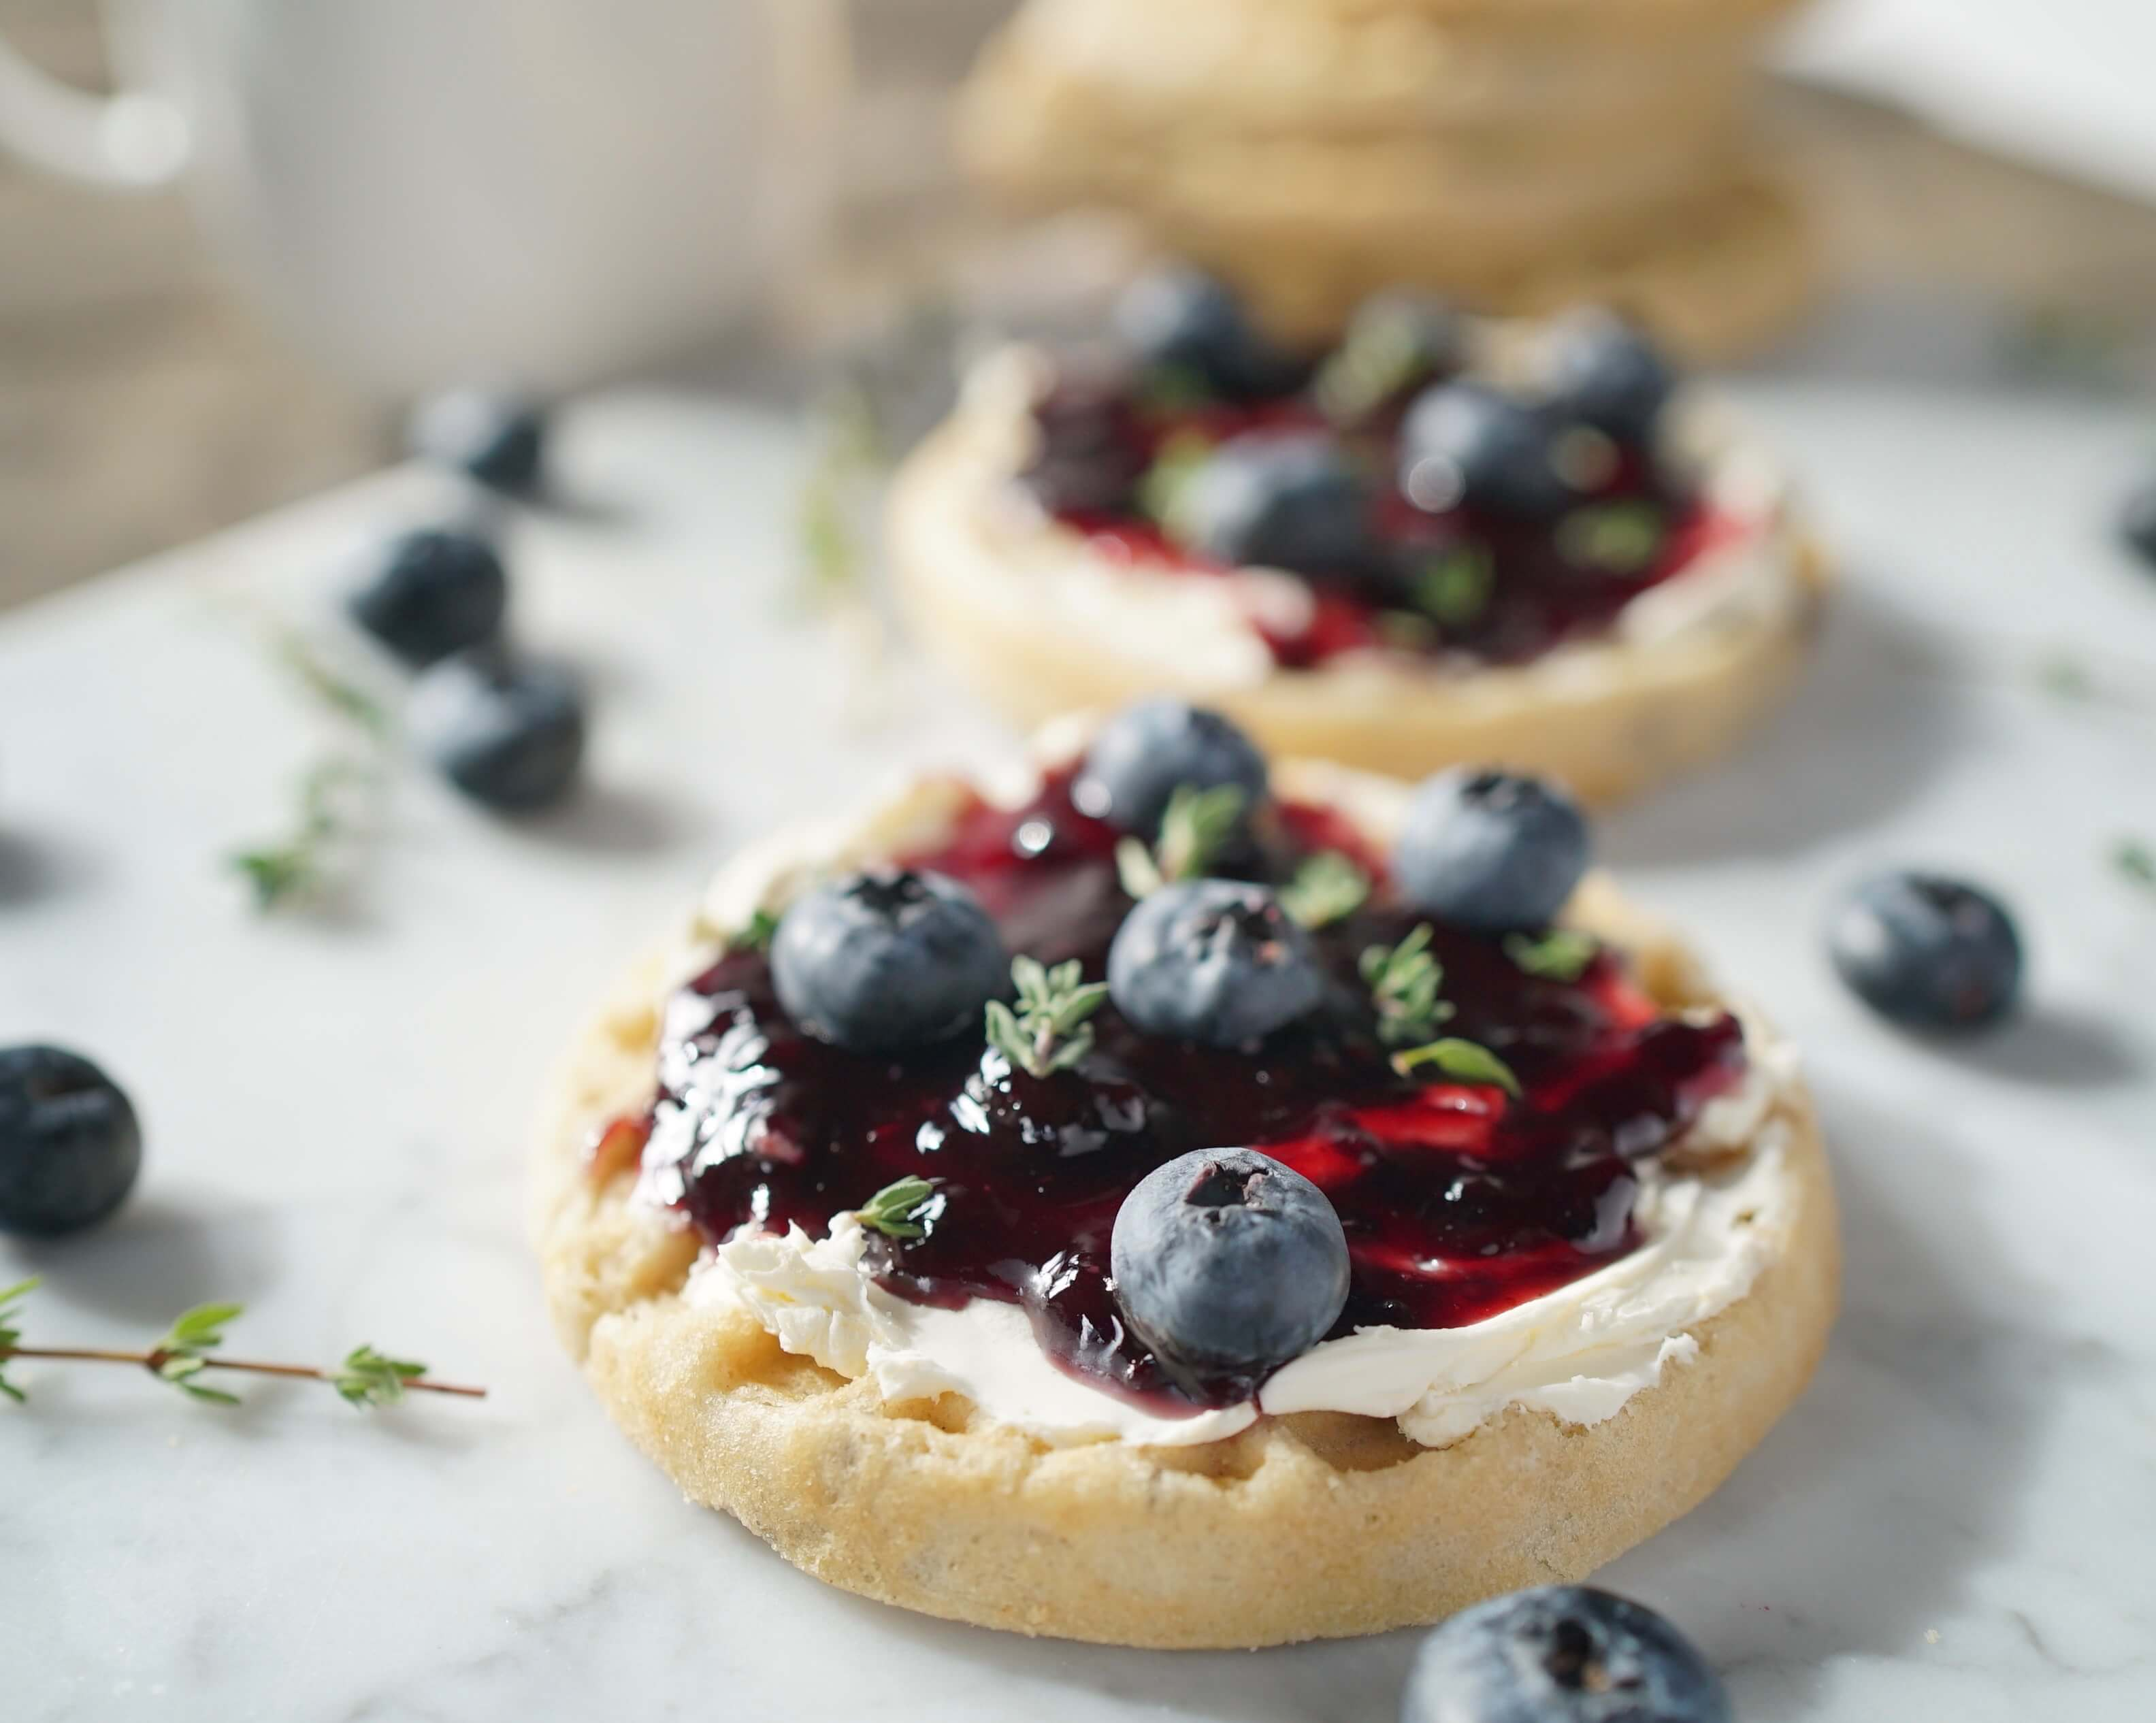 Blueberry and Cream Cheese Waffle